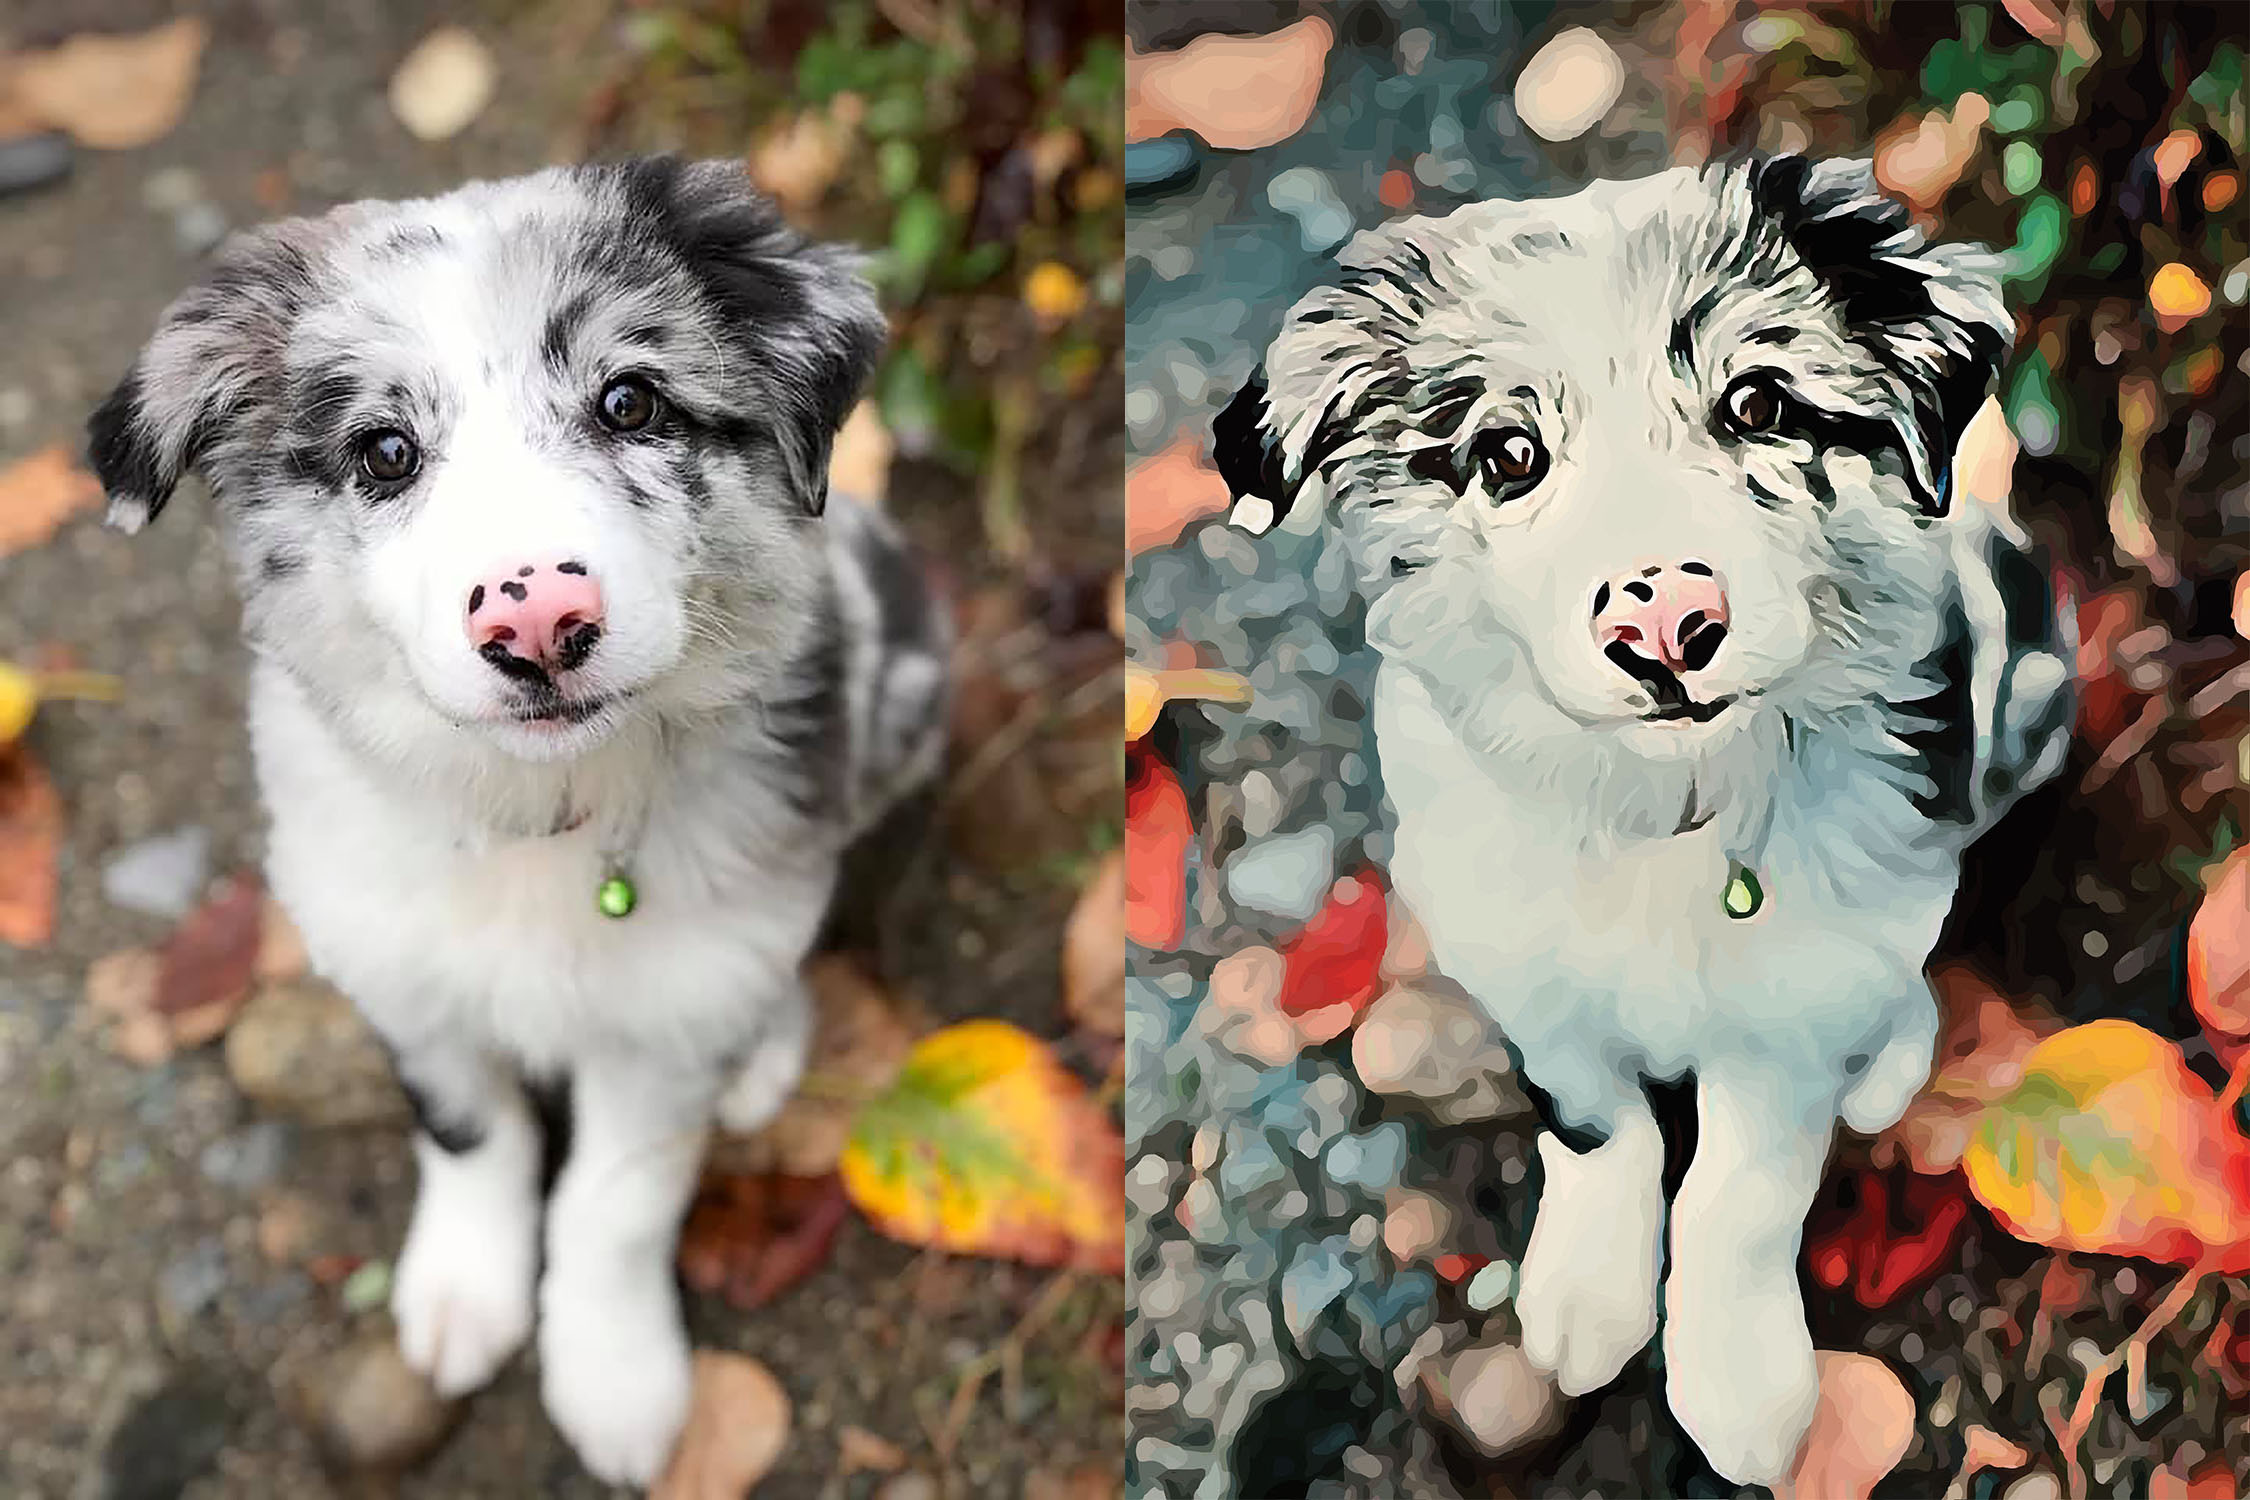 Before and after stylized image of a puppy sitting and looking into the camera